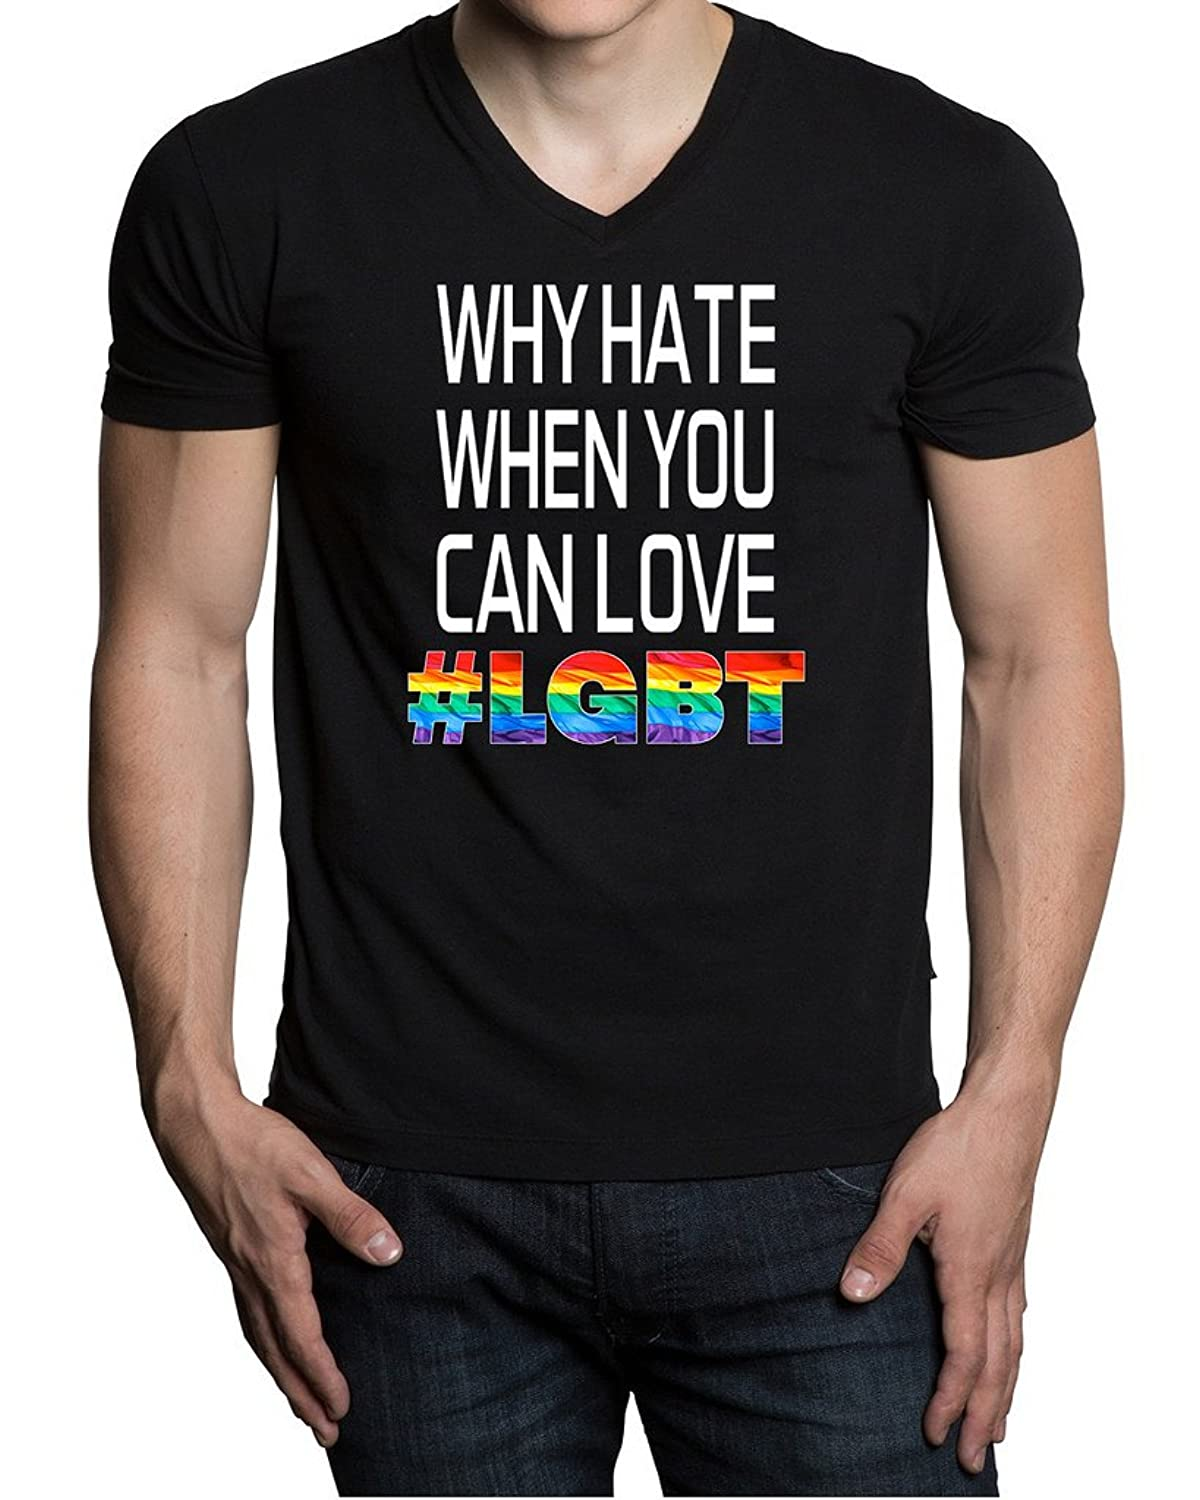 Why Hate When You Can Love LGBT Men's Black V-Neck T-Shirt V234 Black